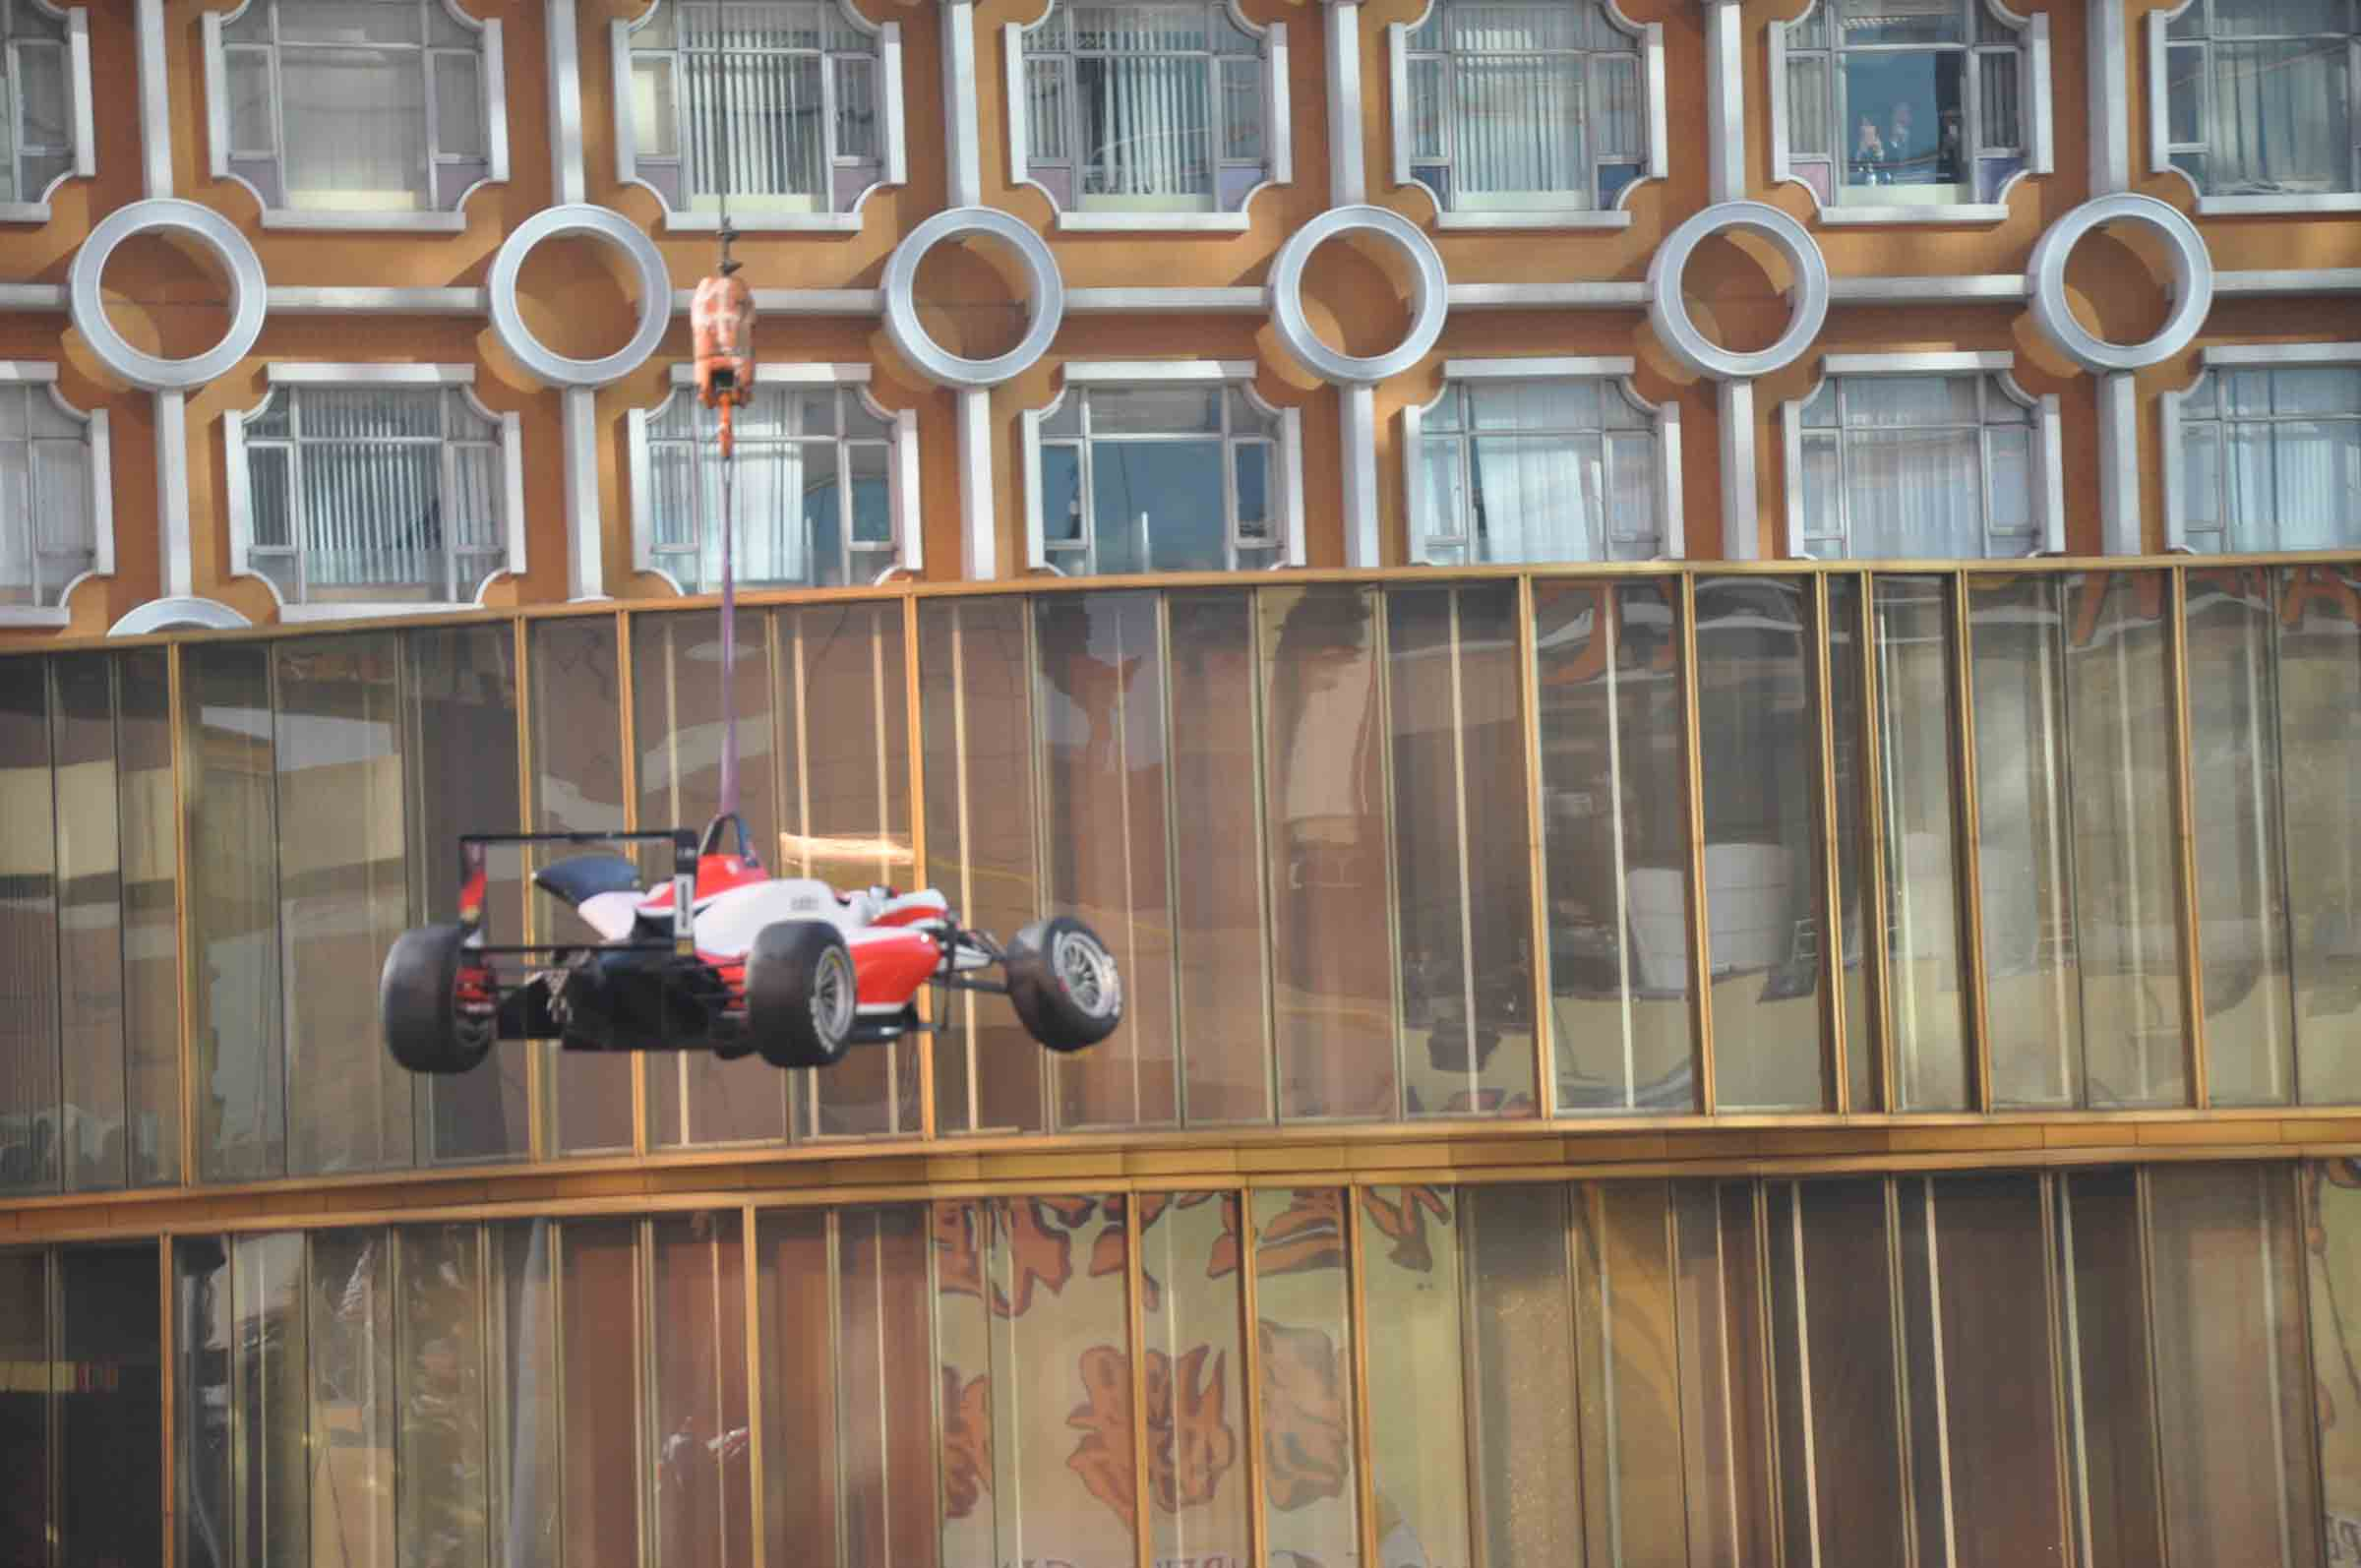 Macau F3 Grand Prix Race race car in mid air